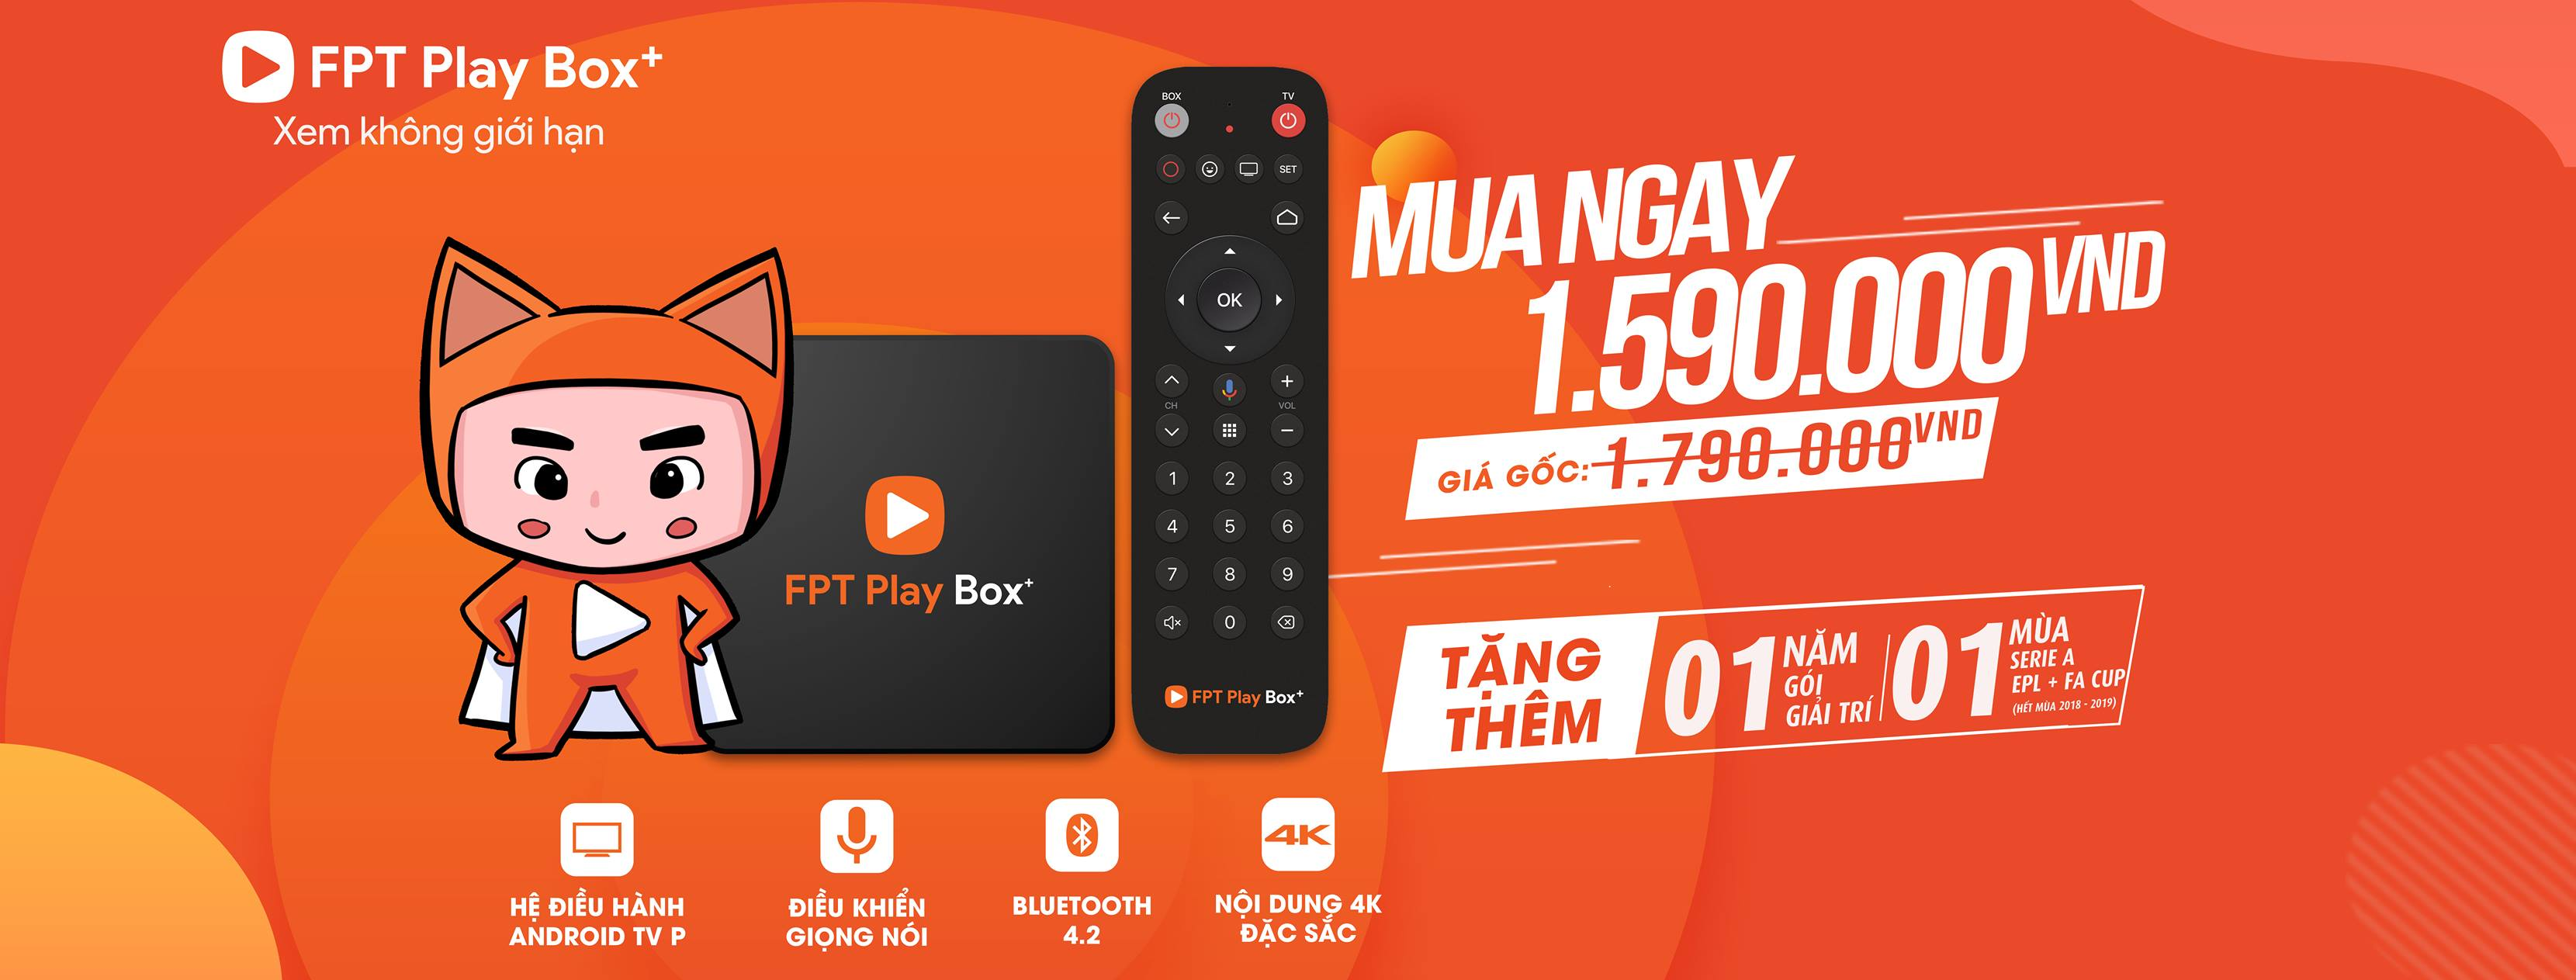 FPT Play Box 2019